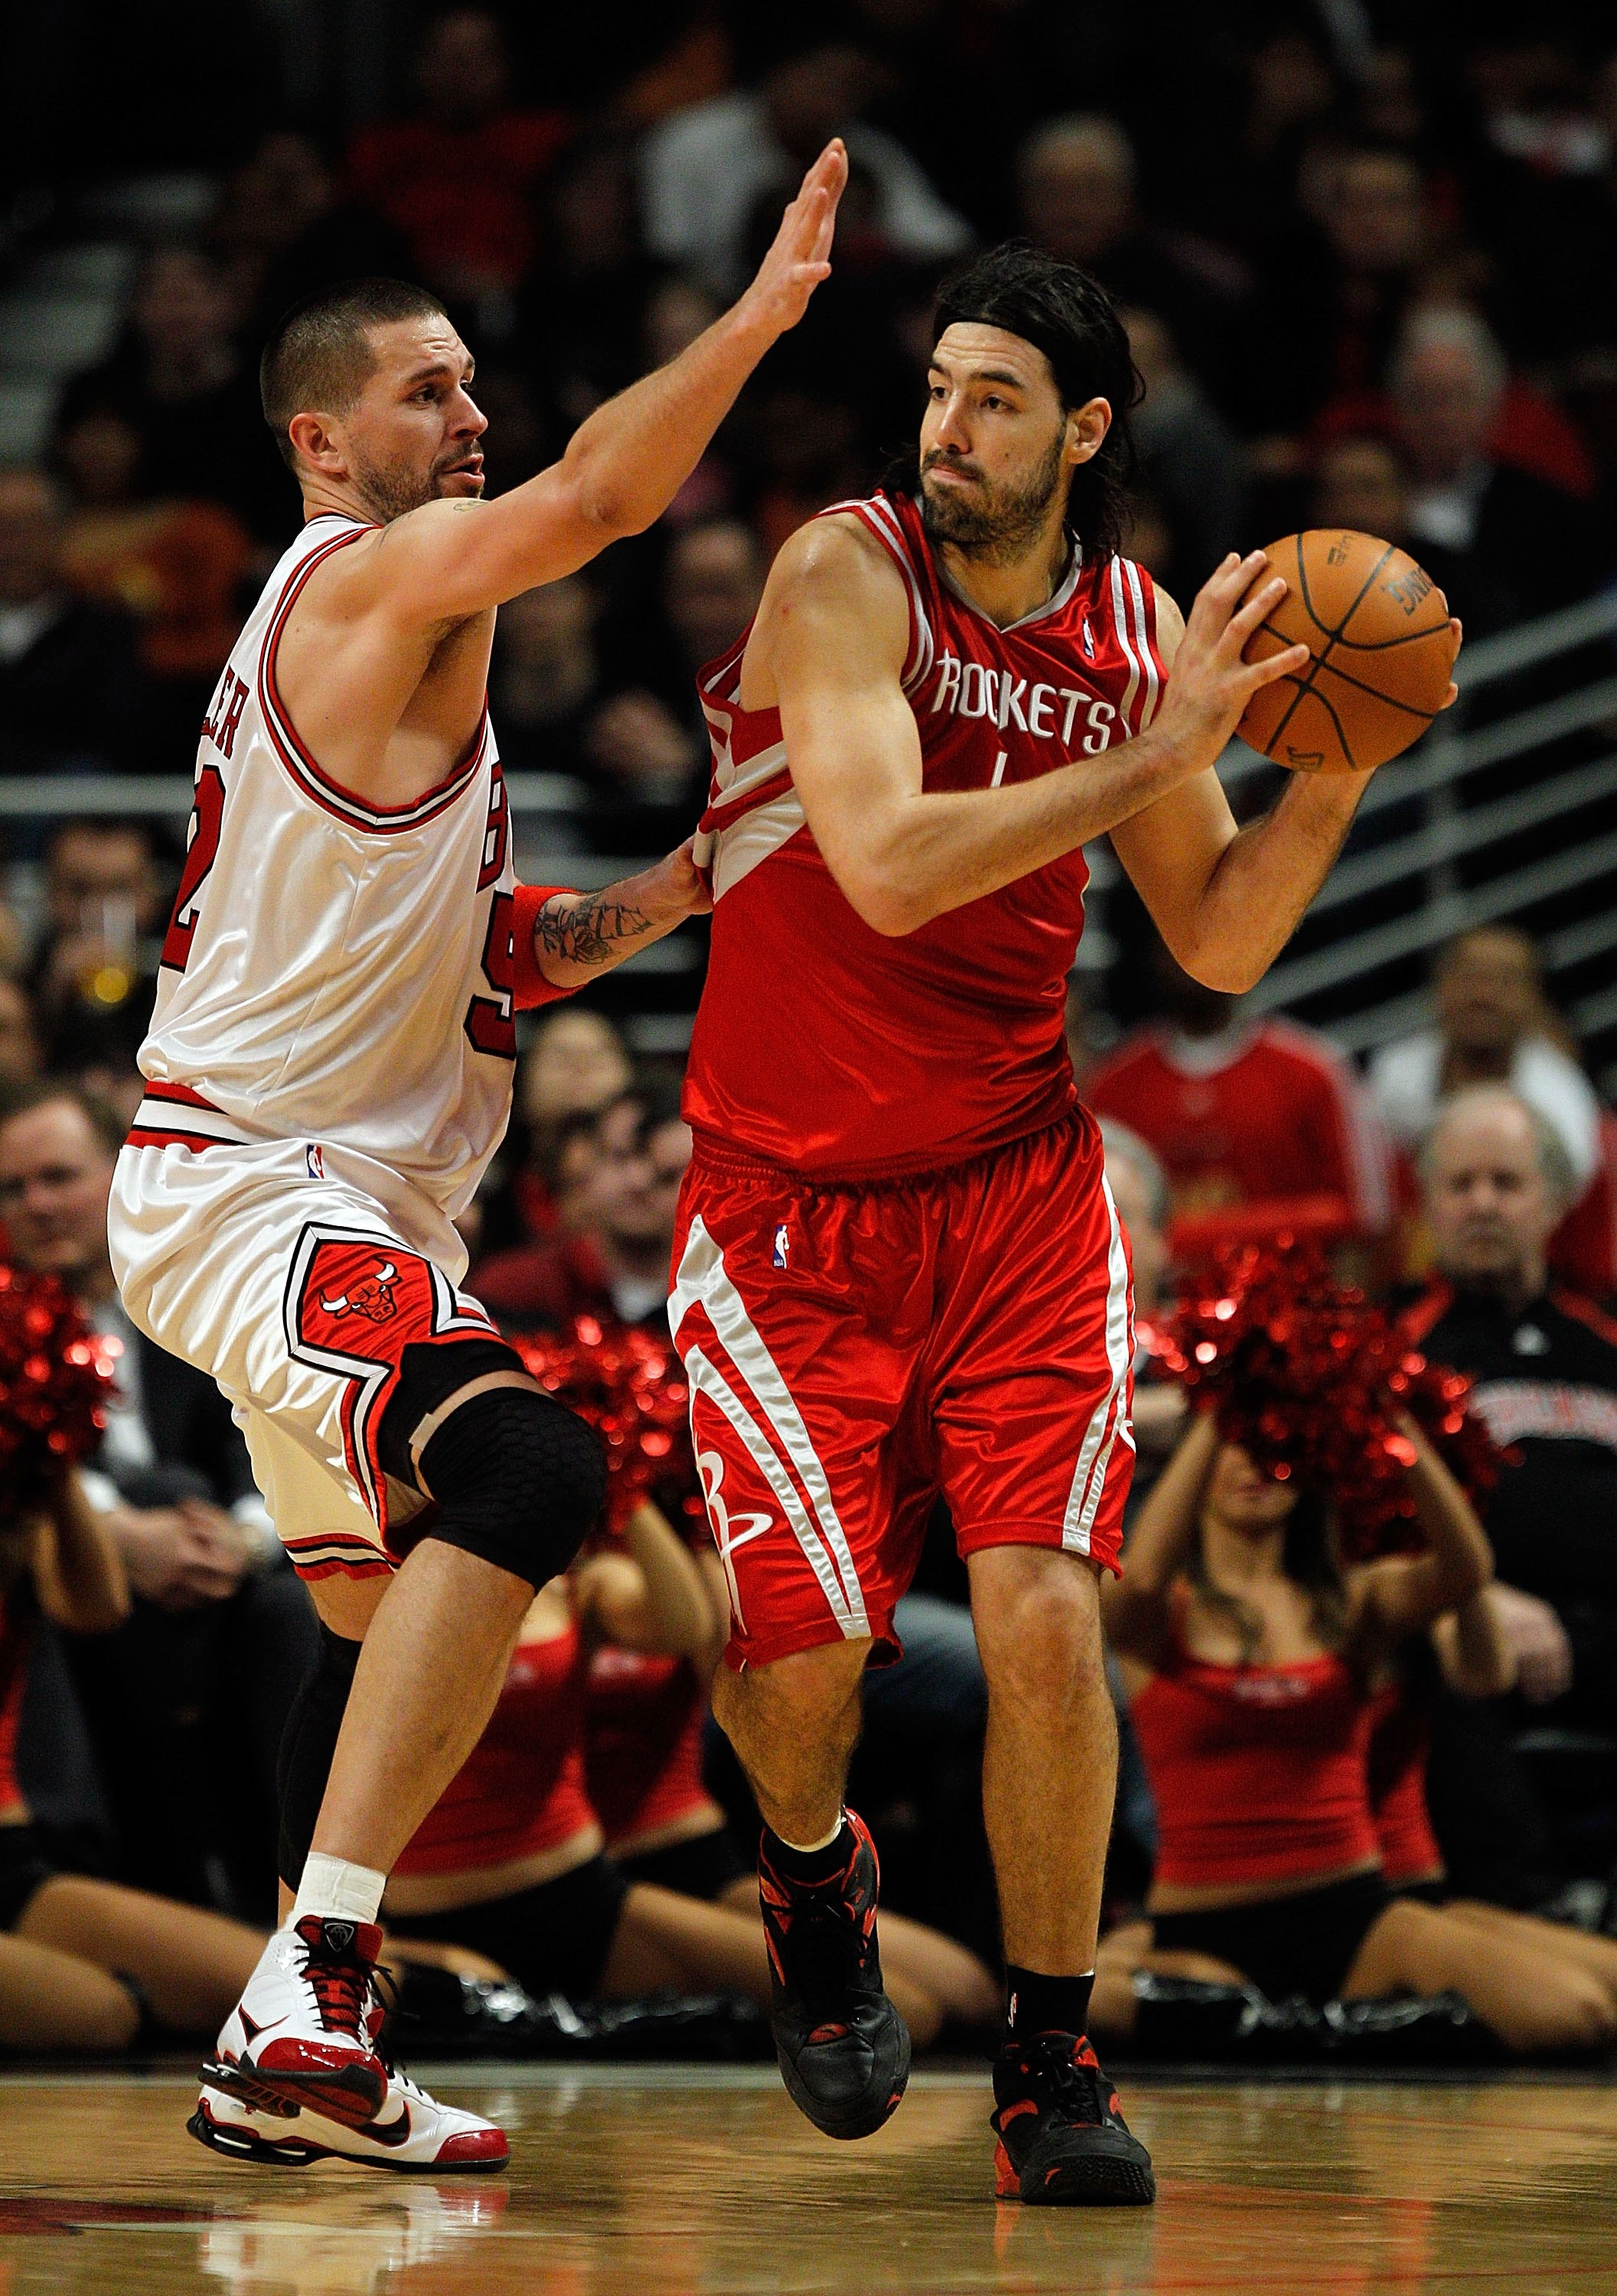 CHICAGO - MARCH 22: Luis Scola #4 of the Houston Rockets looks to pass under pressure from Brad Miller #52 of the Chicago Bulls at the United Center on March 22, 2010 in Chicago, Illinois. The Bulls defeated the Rockets 98-88. NOTE TO USER: User expressly